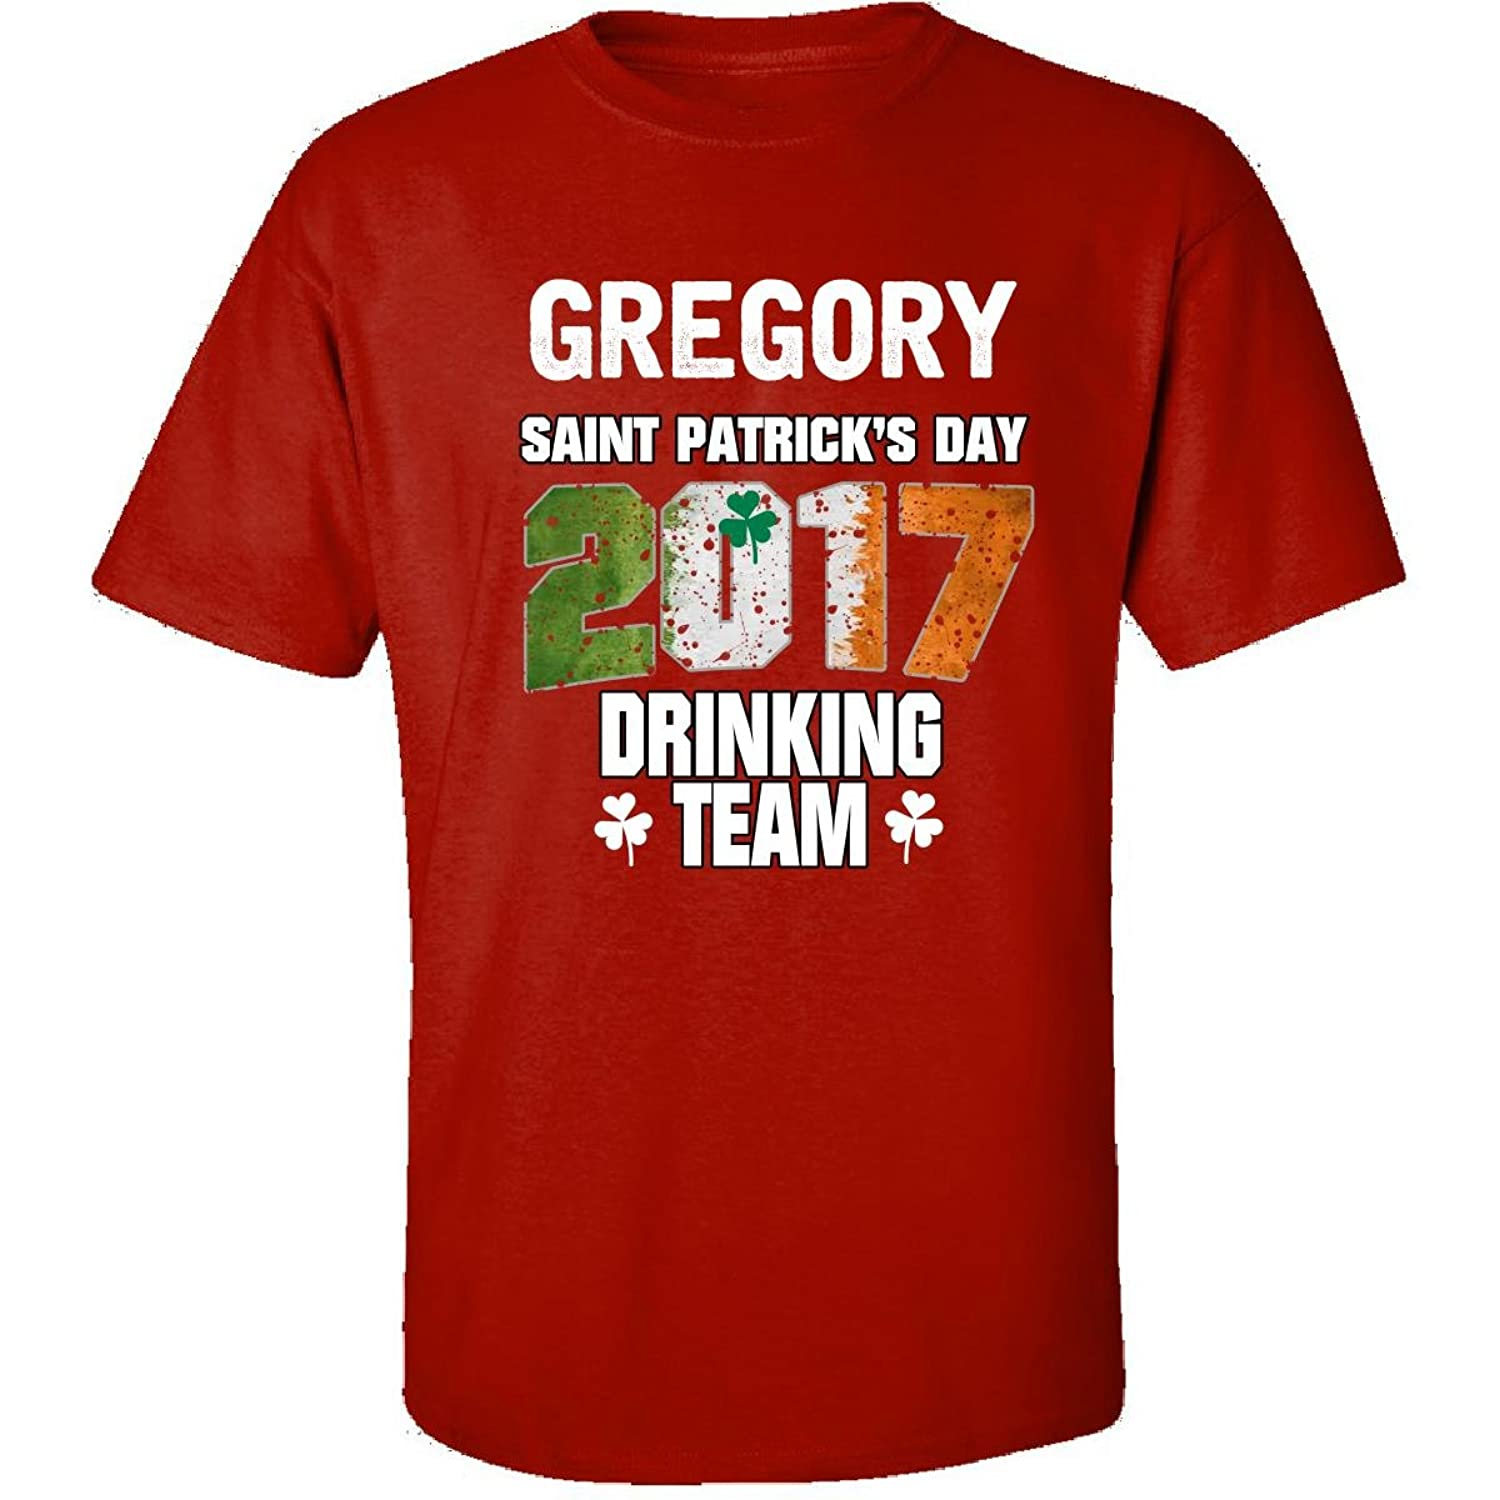 Gregory Irish St Patricks Day 2017 Drinking Team - Adult Shirt